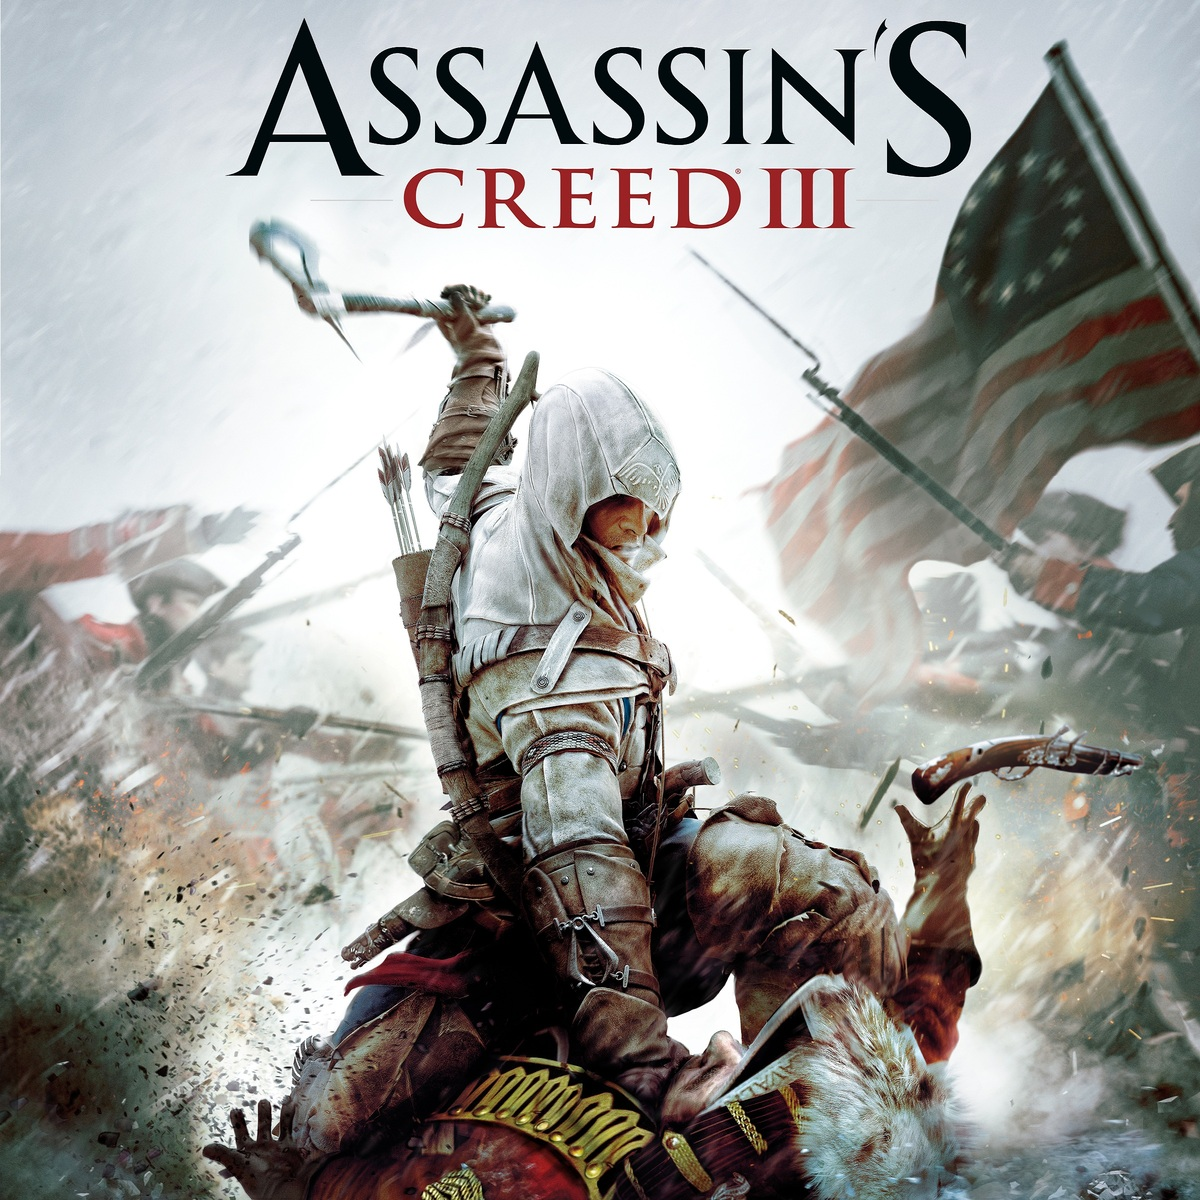 Assassin's Creed 20 MP20   Download Assassin's Creed 20 Soundtracks ...